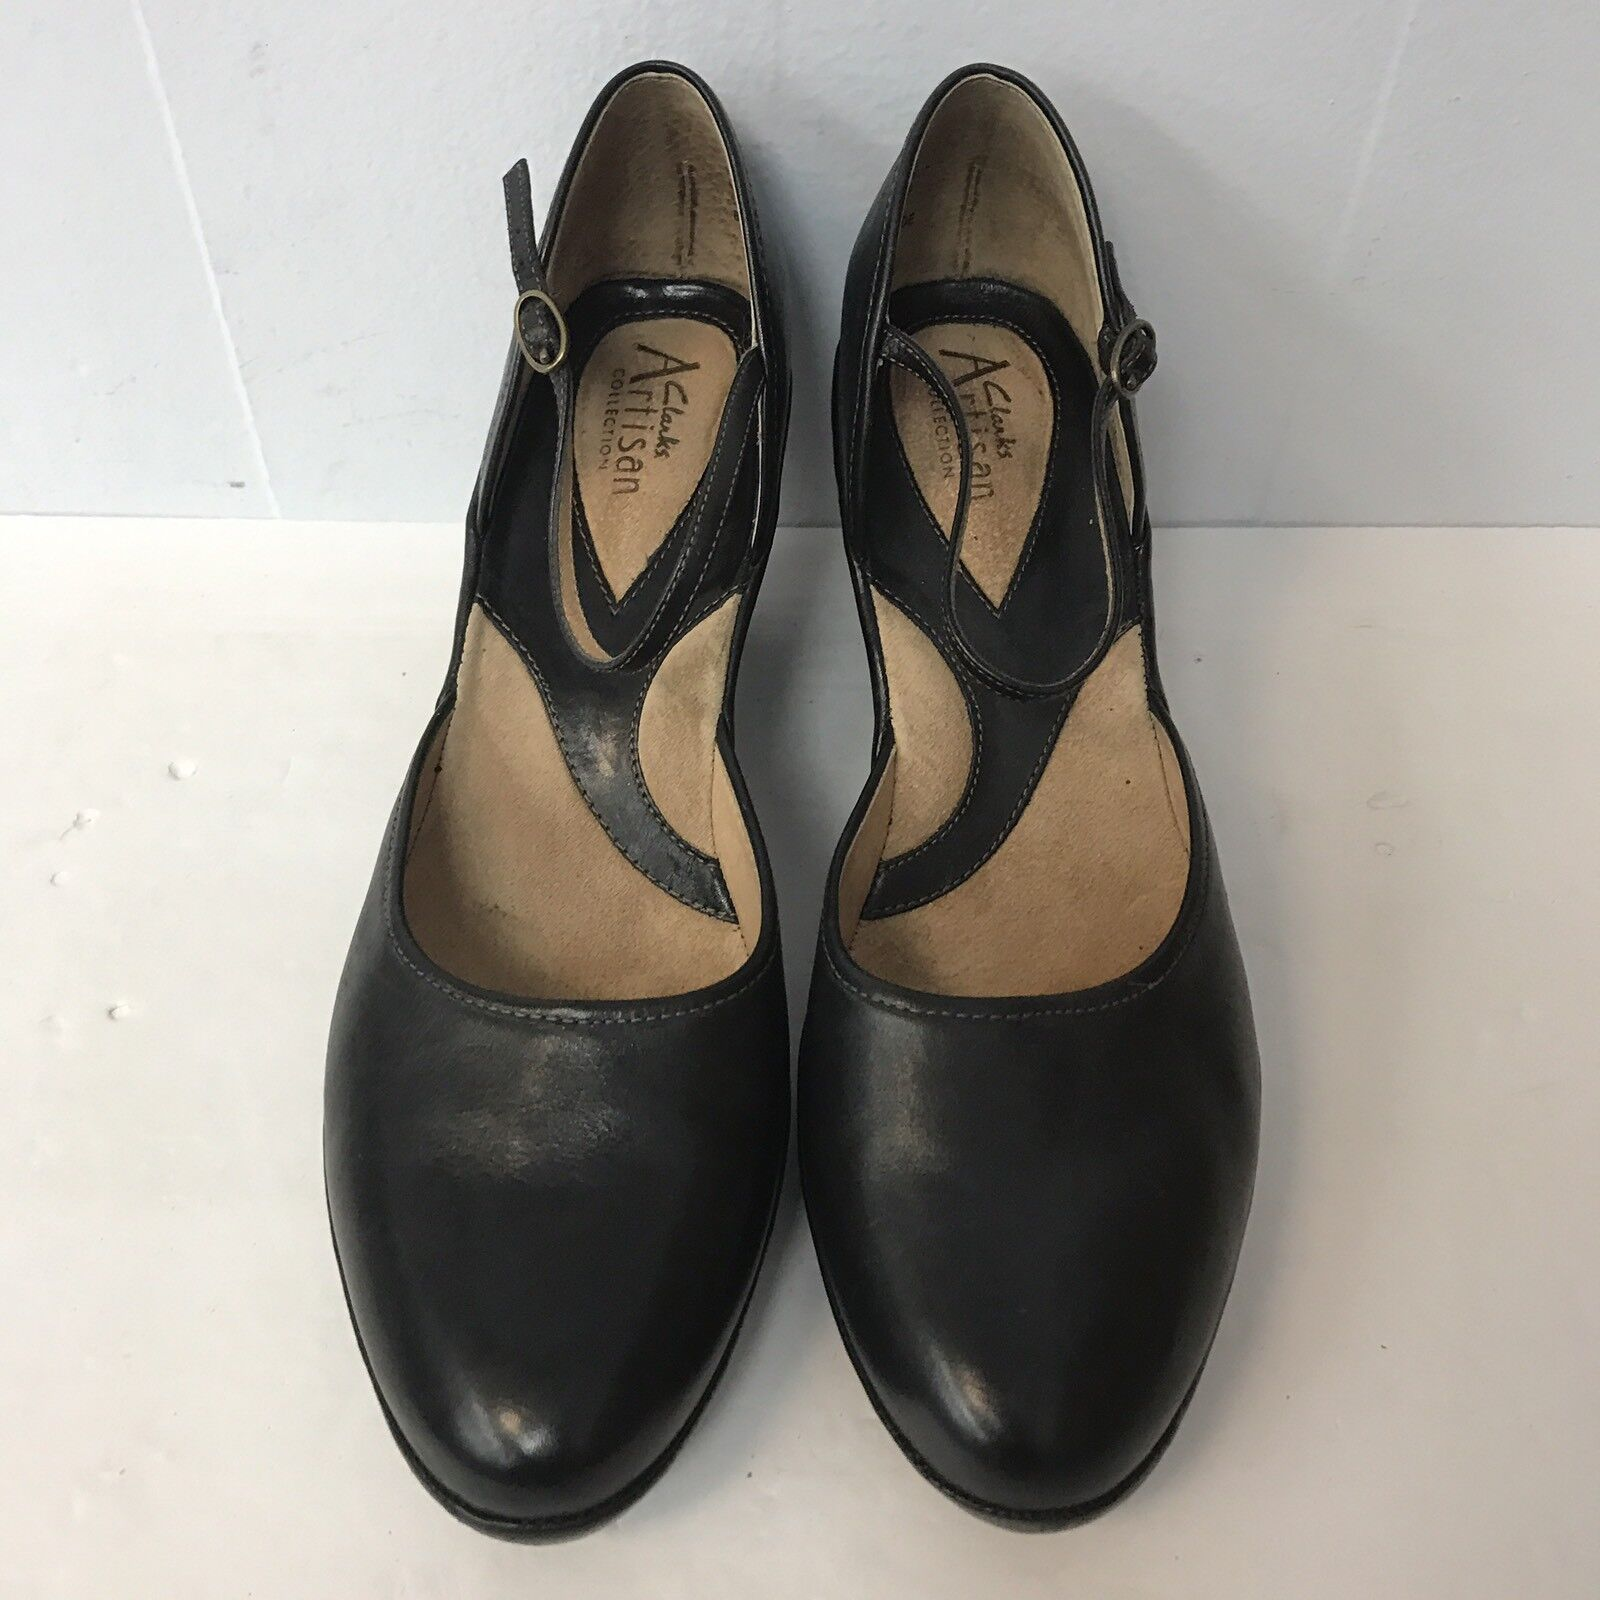 clarks artisan Collection Shoes Heels Wedges Women Size 10M